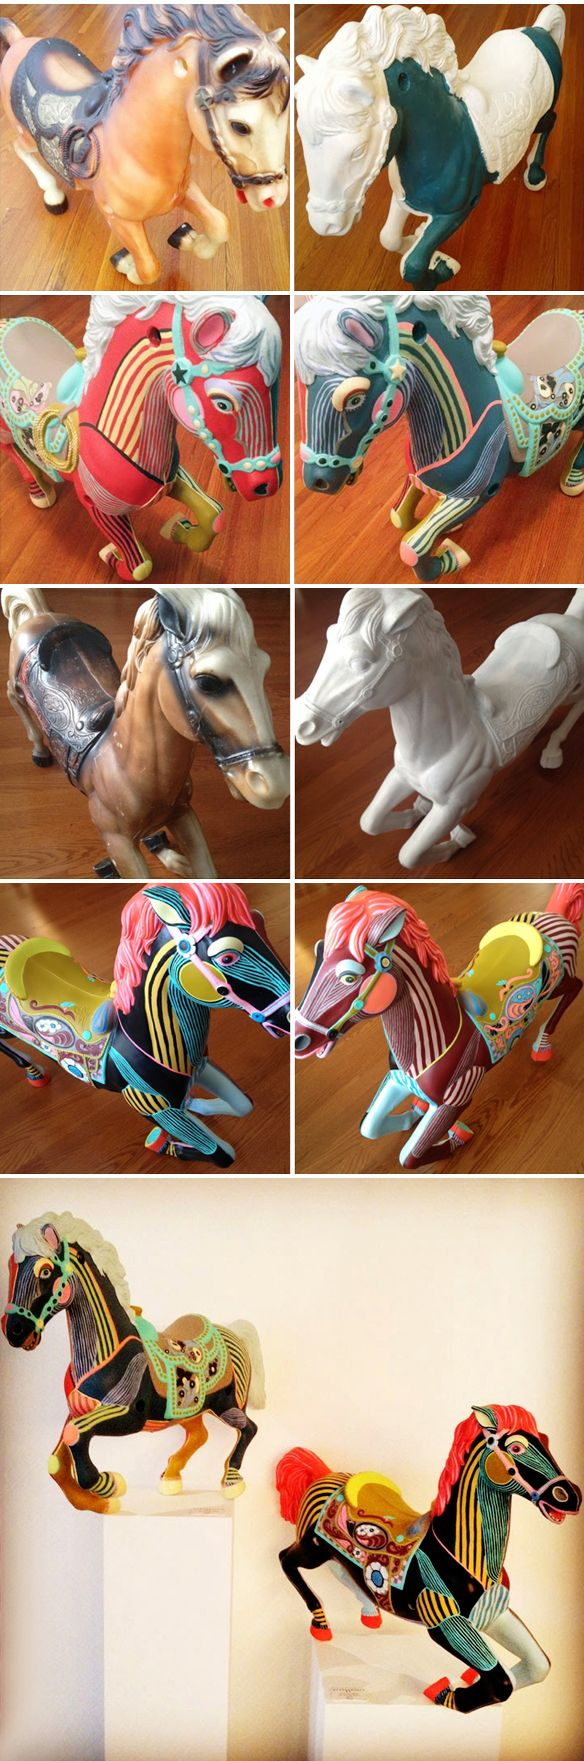 "jennifer davis - painted carousel ponies, from ""joyride"""